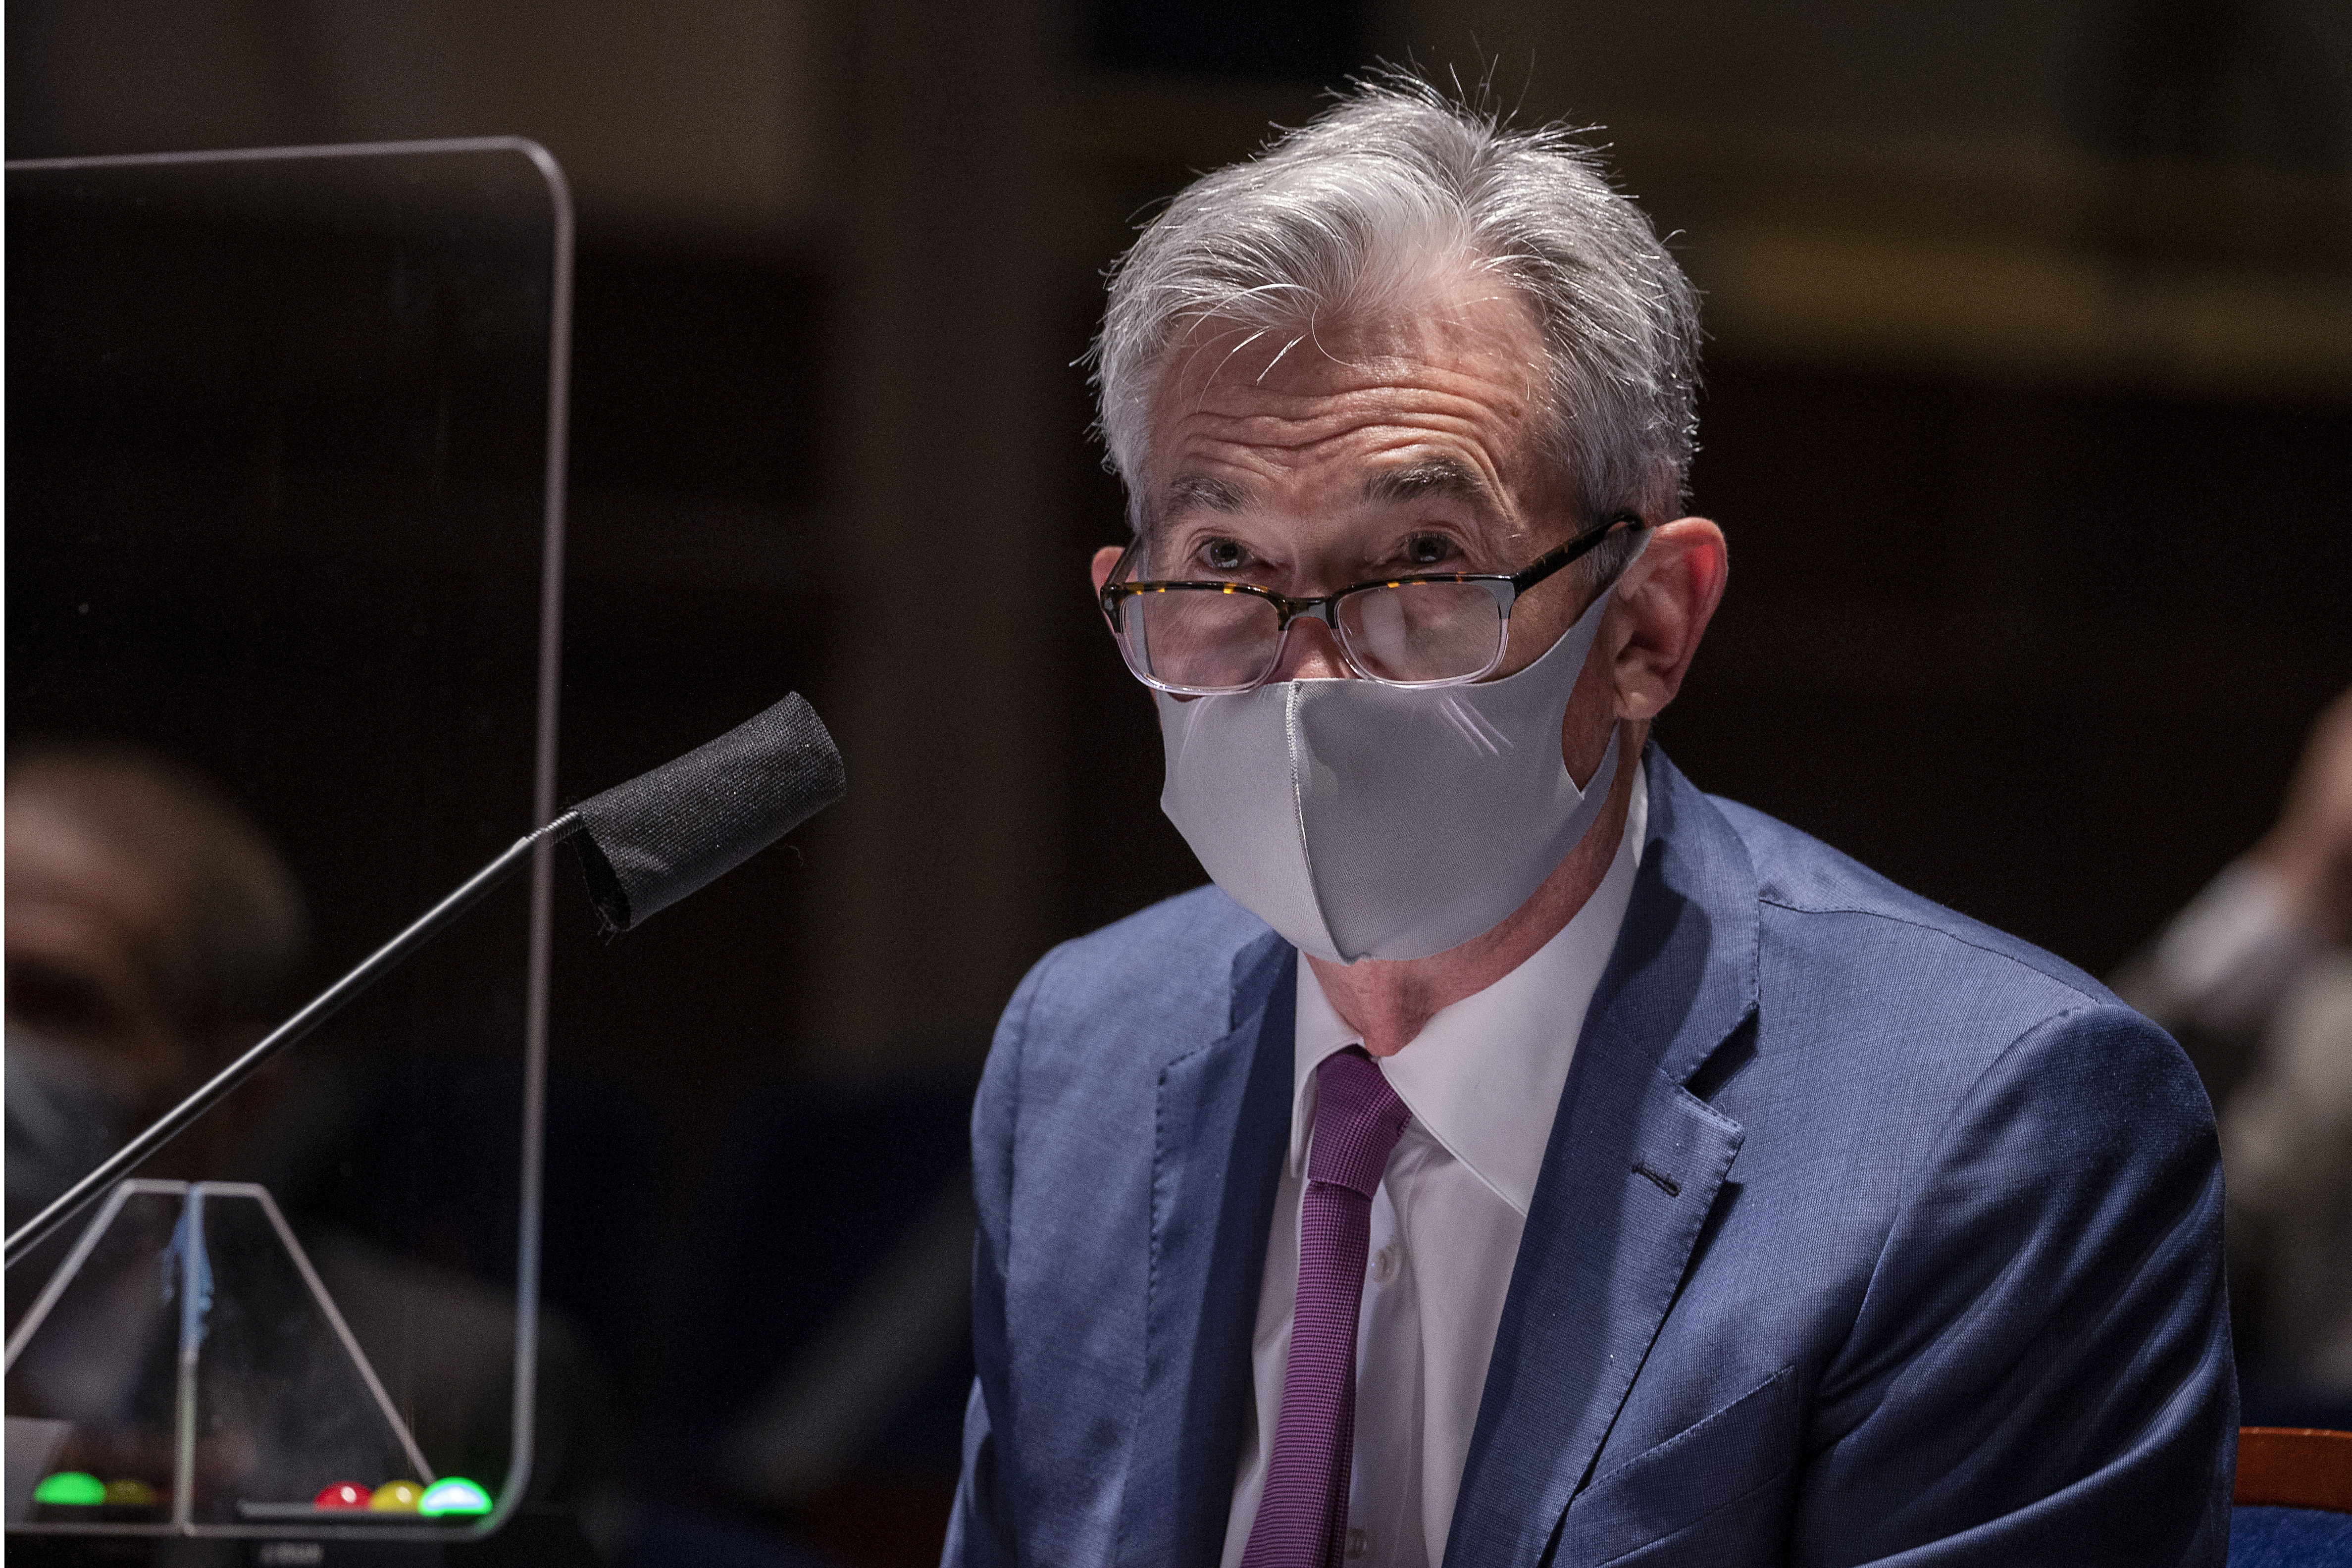 Federal Reserve Chairman Jerome Powell, wearing a face mask, testifies before the House of Representatives Financial Services Committee during a hearing on oversight of the Treasury Department and Federal Reserve response to the outbreak of the coronavirus disease (COVID-19), on Capitol Hill in Washington, U.S., June 30, 2020. Tasos Katopodis/Pool via REUTERS